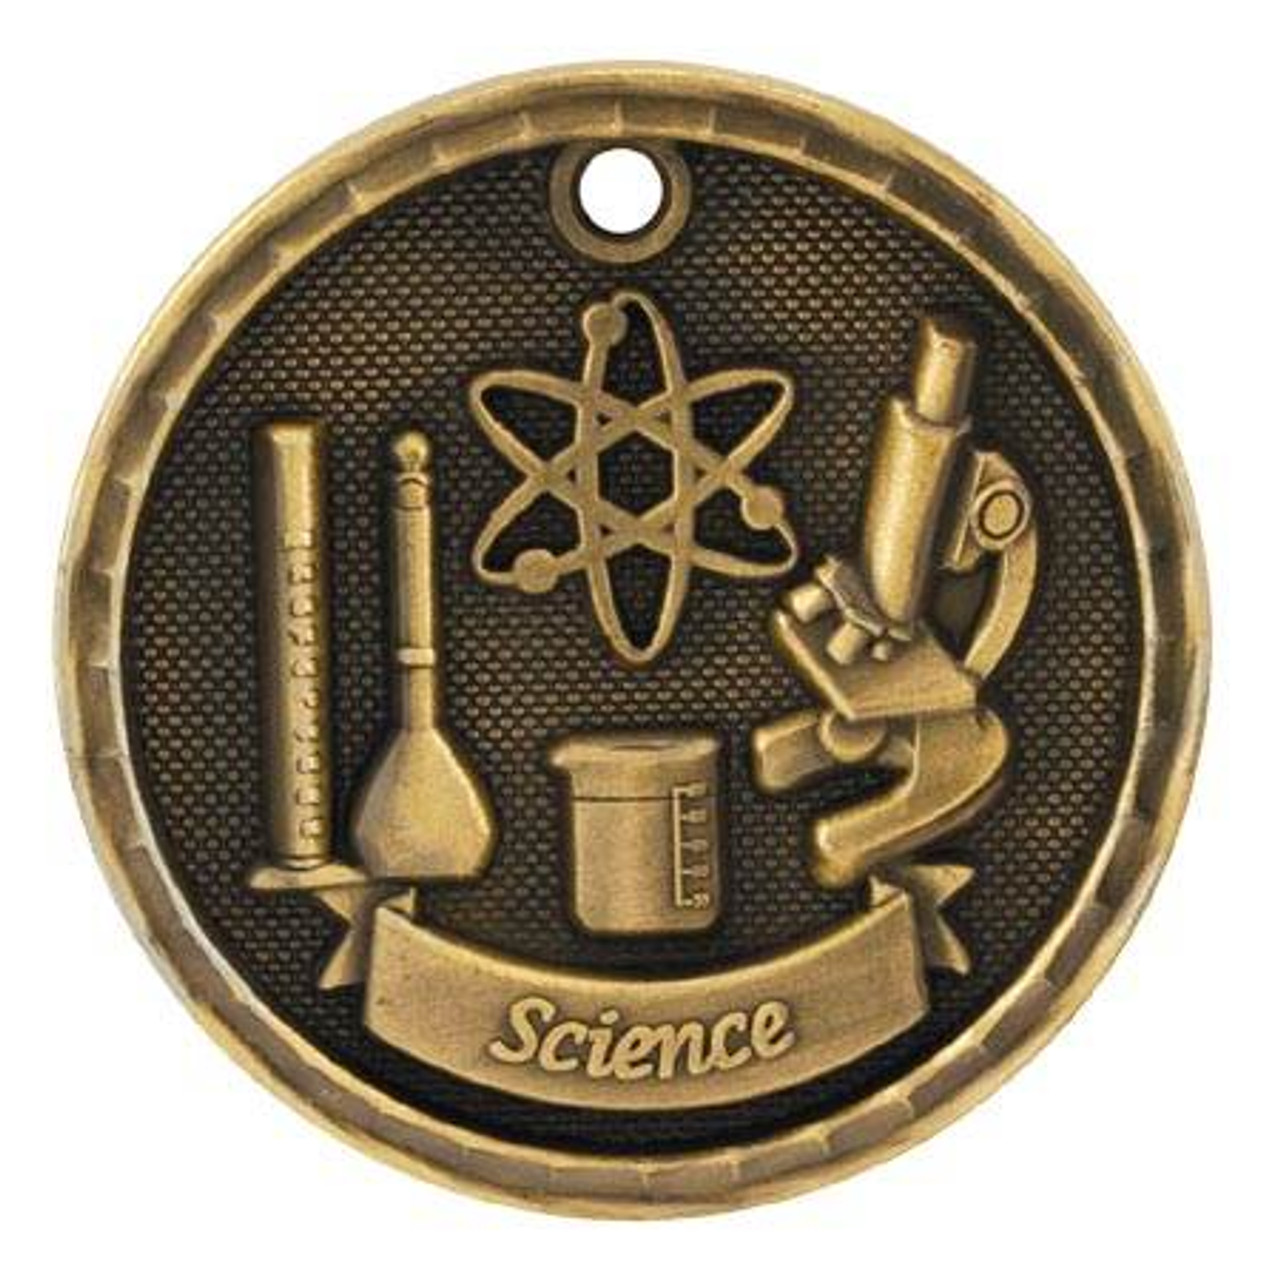 3D Science Medal